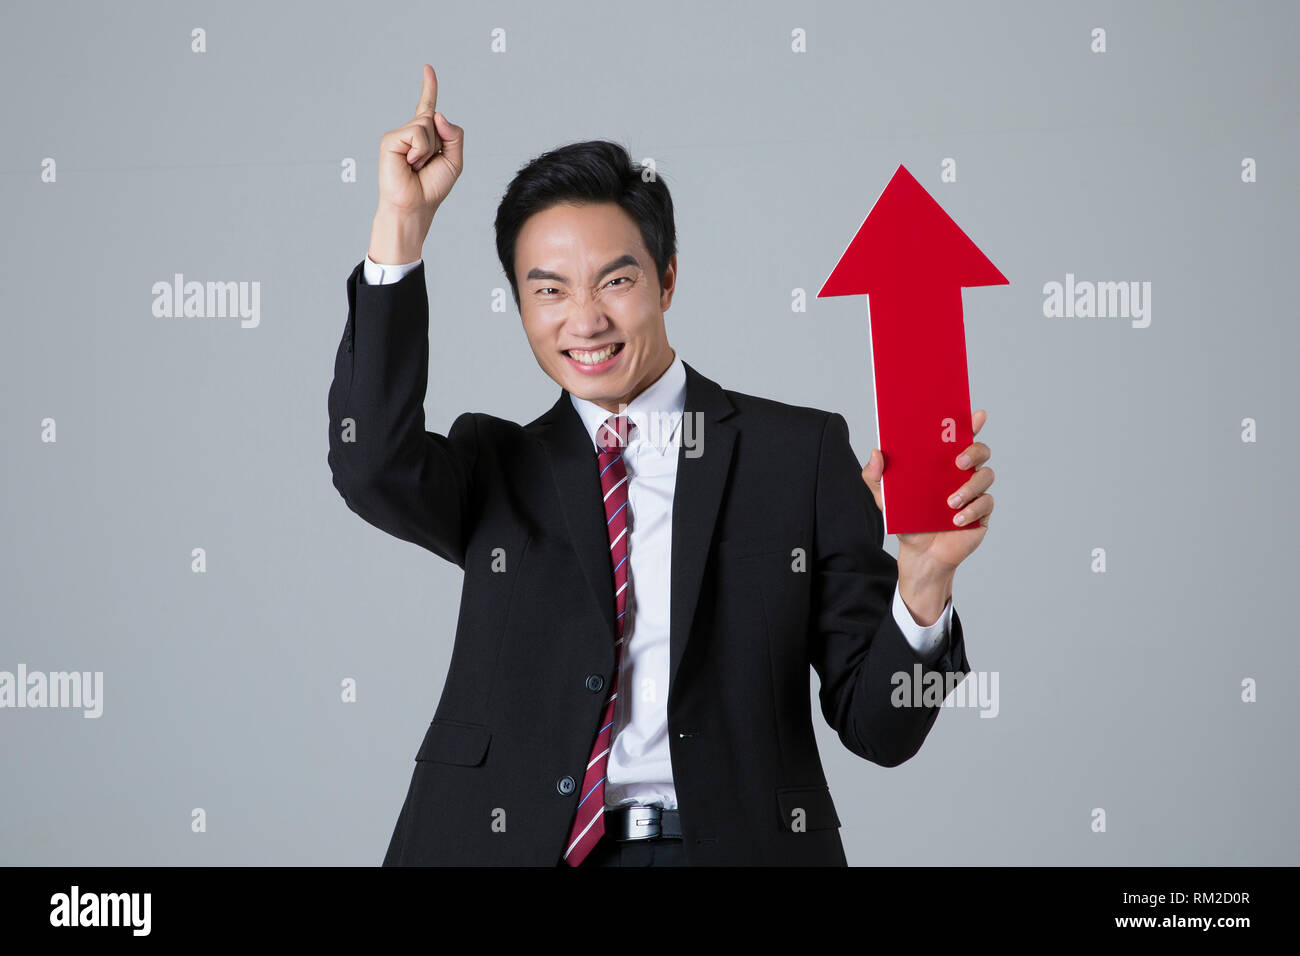 Young businessman concept photo. 132 - Stock Image